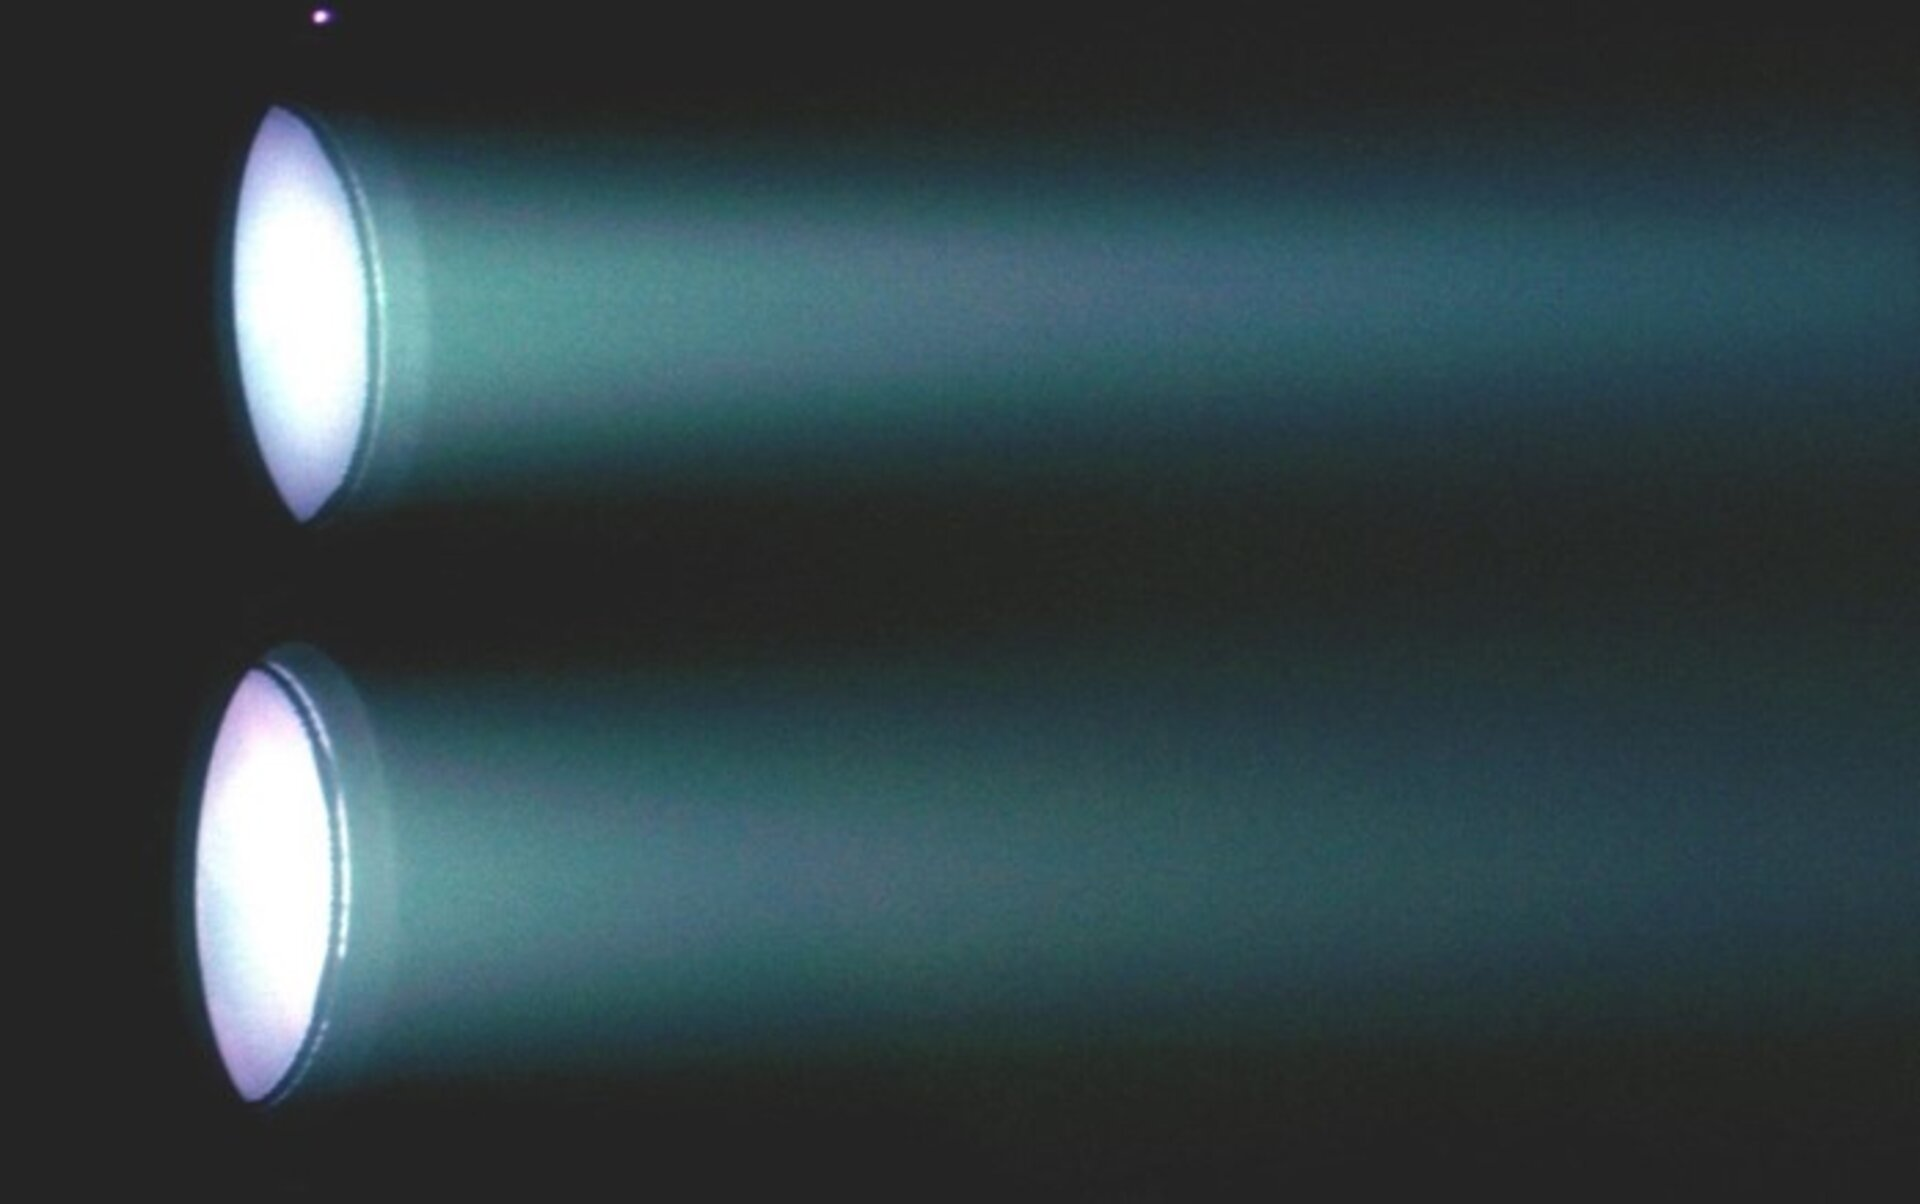 Twin ion thrusters firing